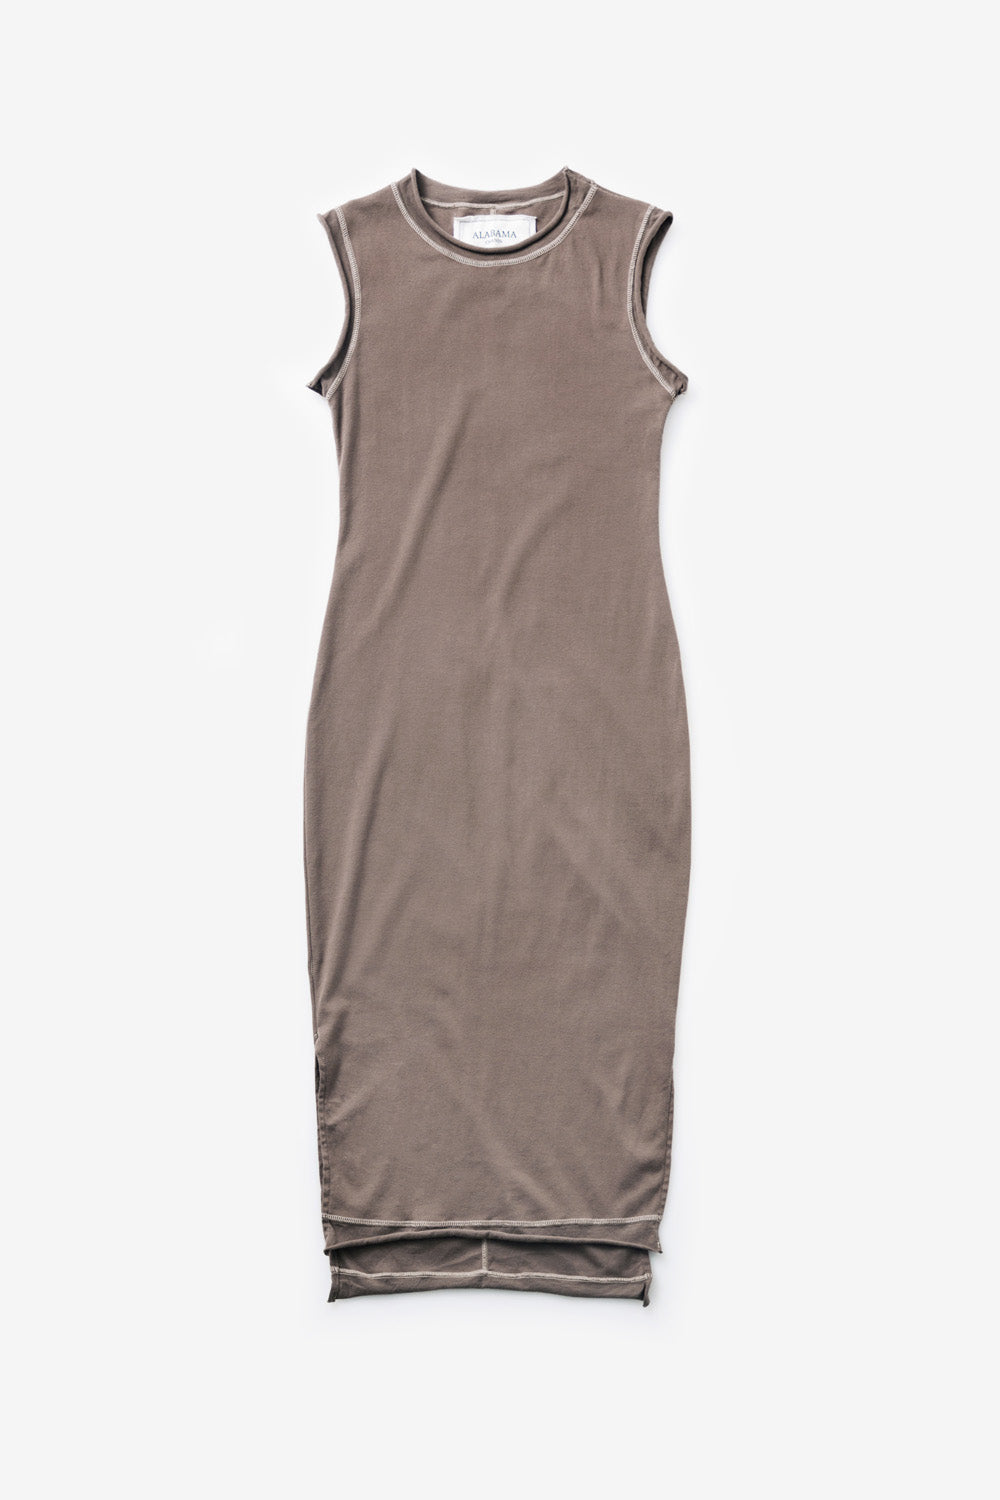 Alabama Chanin The Essential Rib Dress Women's Organic Cotton Sleeveless Rib Dress with Side Slits in Brown